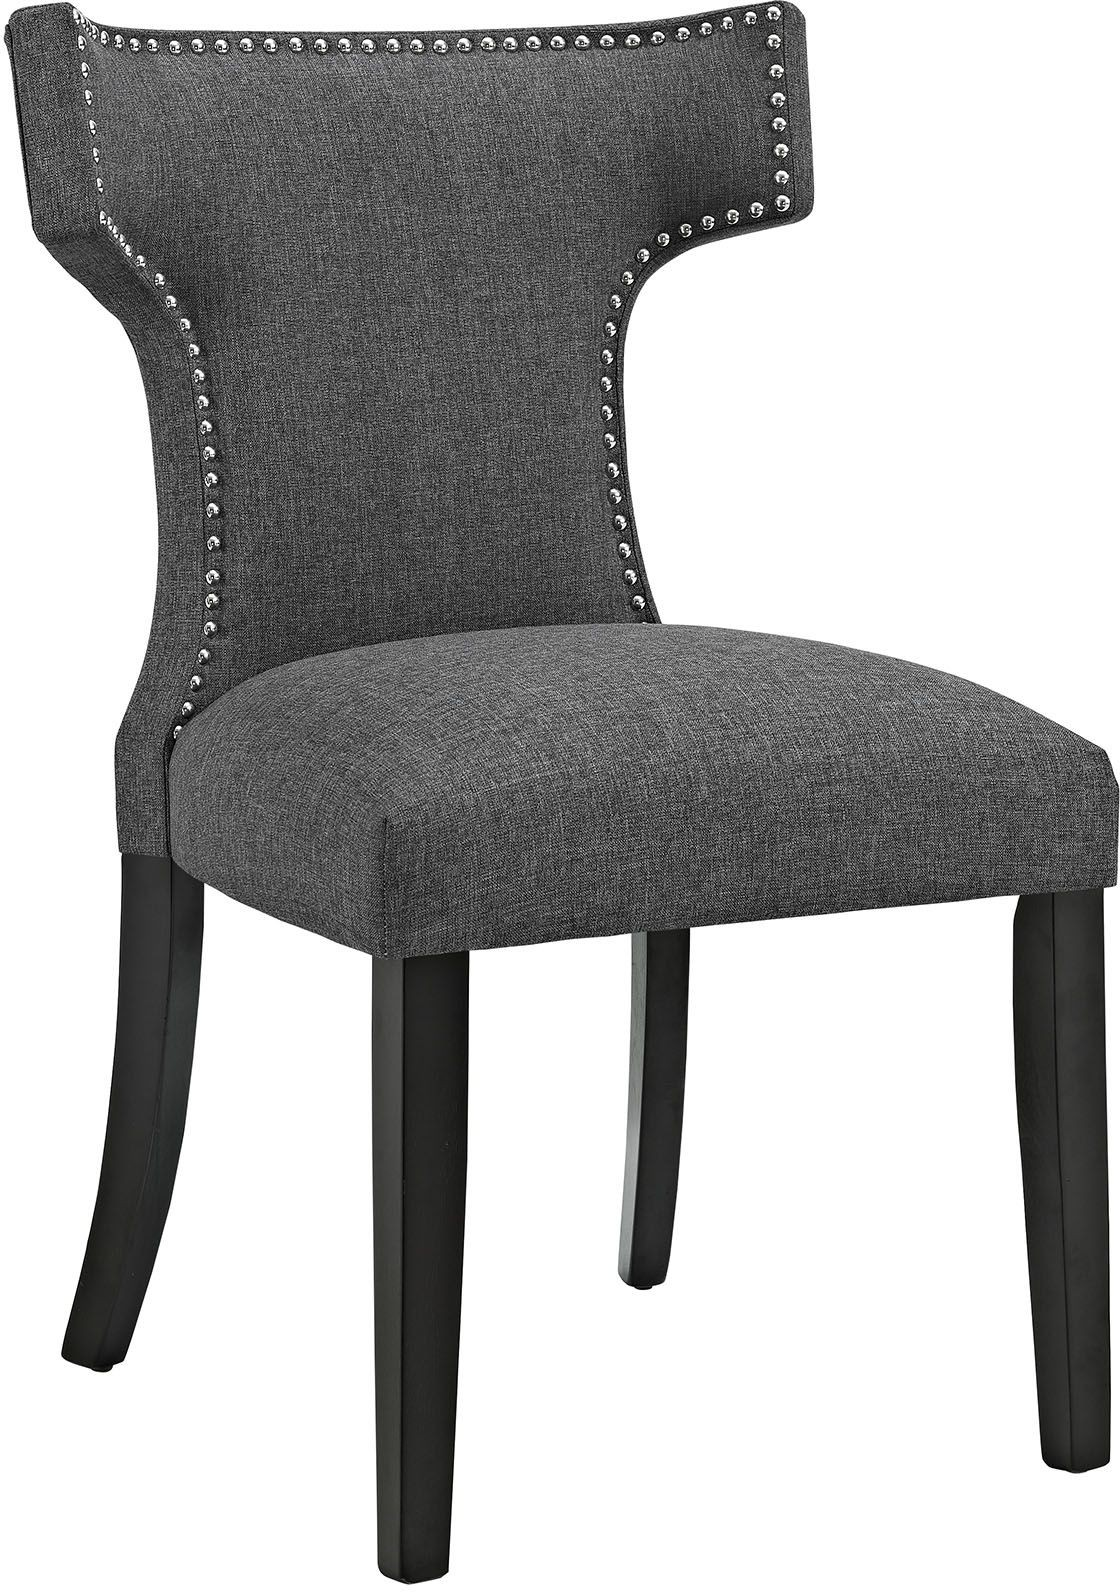 Grey Upholstered Chair Curve Gray Upholstered Dining Chair Eei 2221 Gry